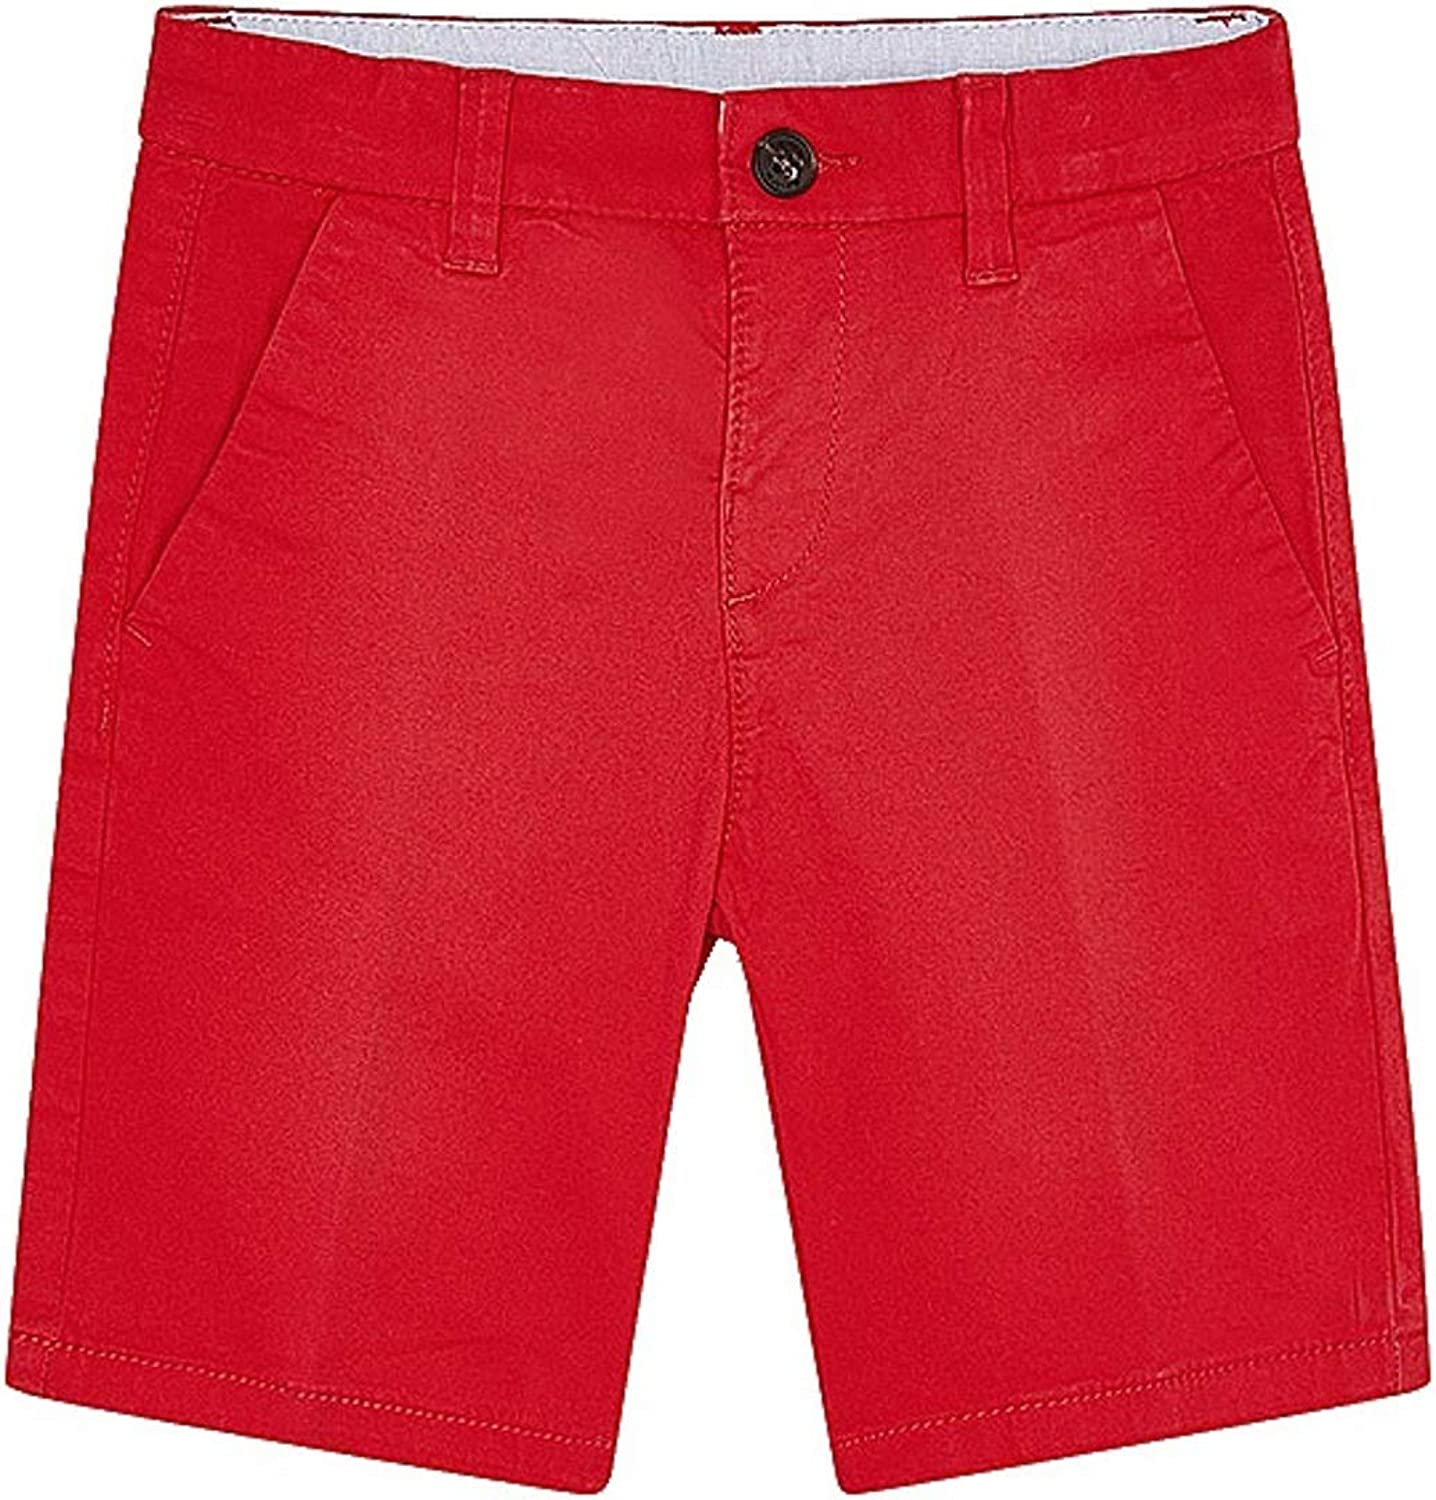 Mayoral - Basic Twill Chino Limited price sale 0202 Shorts Max 43% OFF Red for Boys